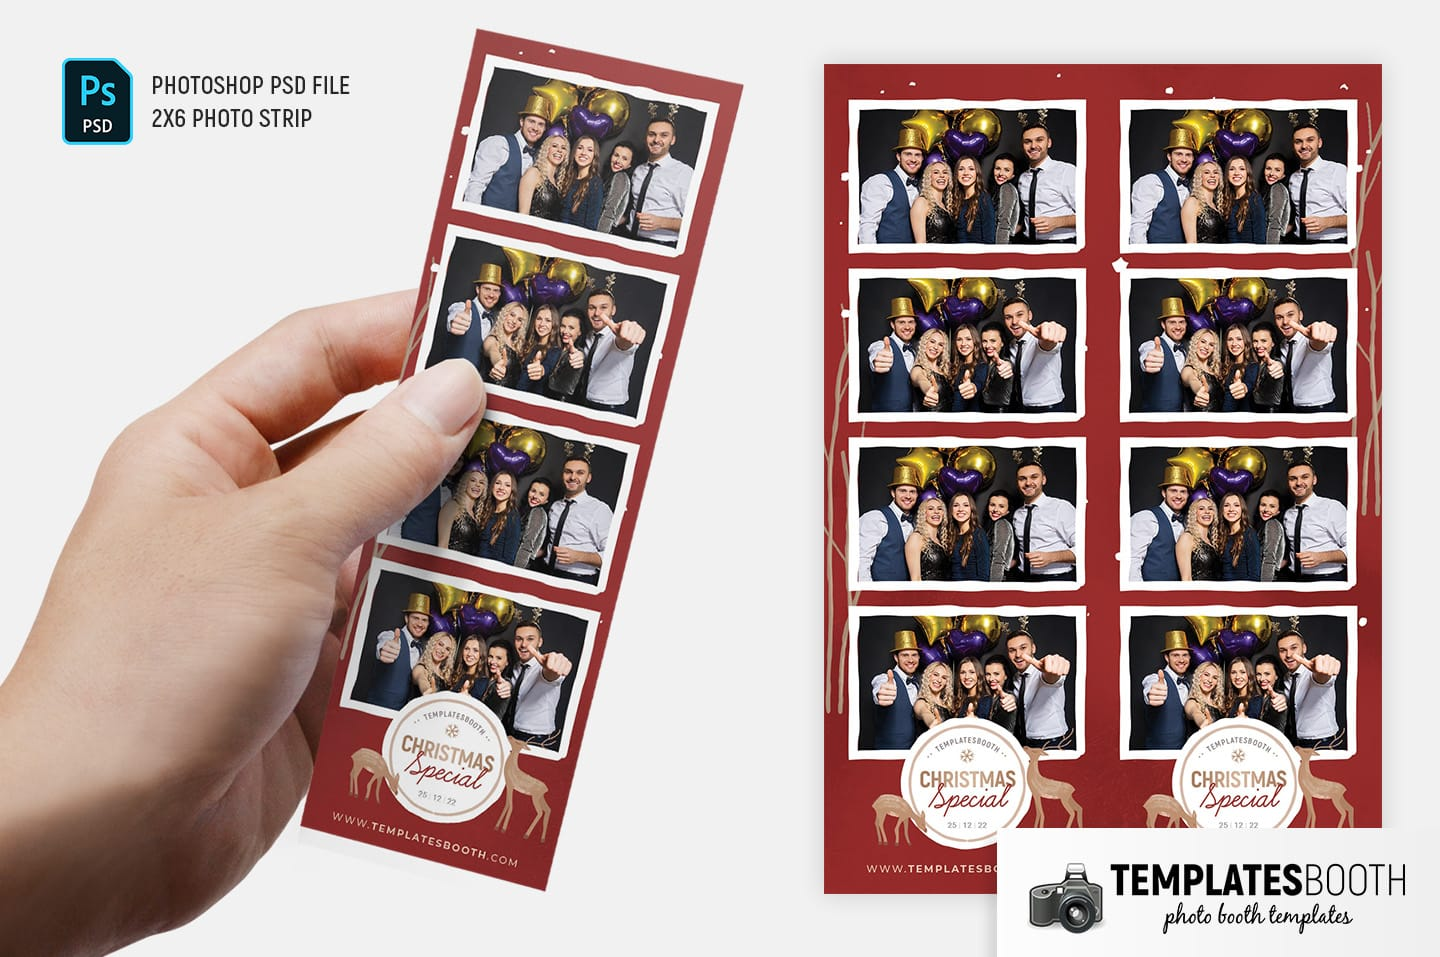 Christmas Special Photo Booth Template (2x6 photo strip)